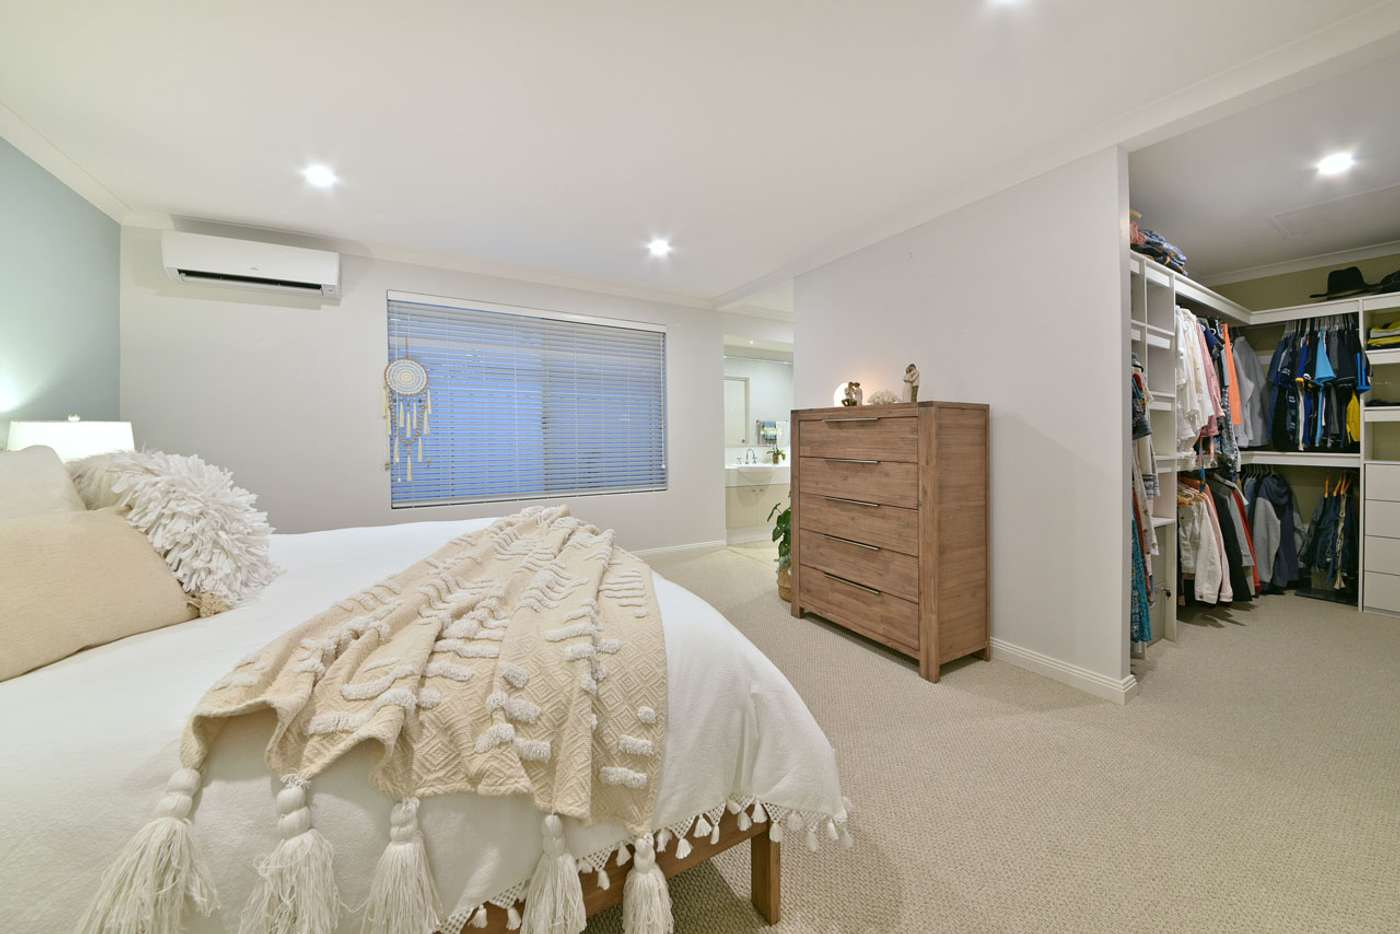 Fifth view of Homely house listing, 3 Scarlet Close, Tapping WA 6065